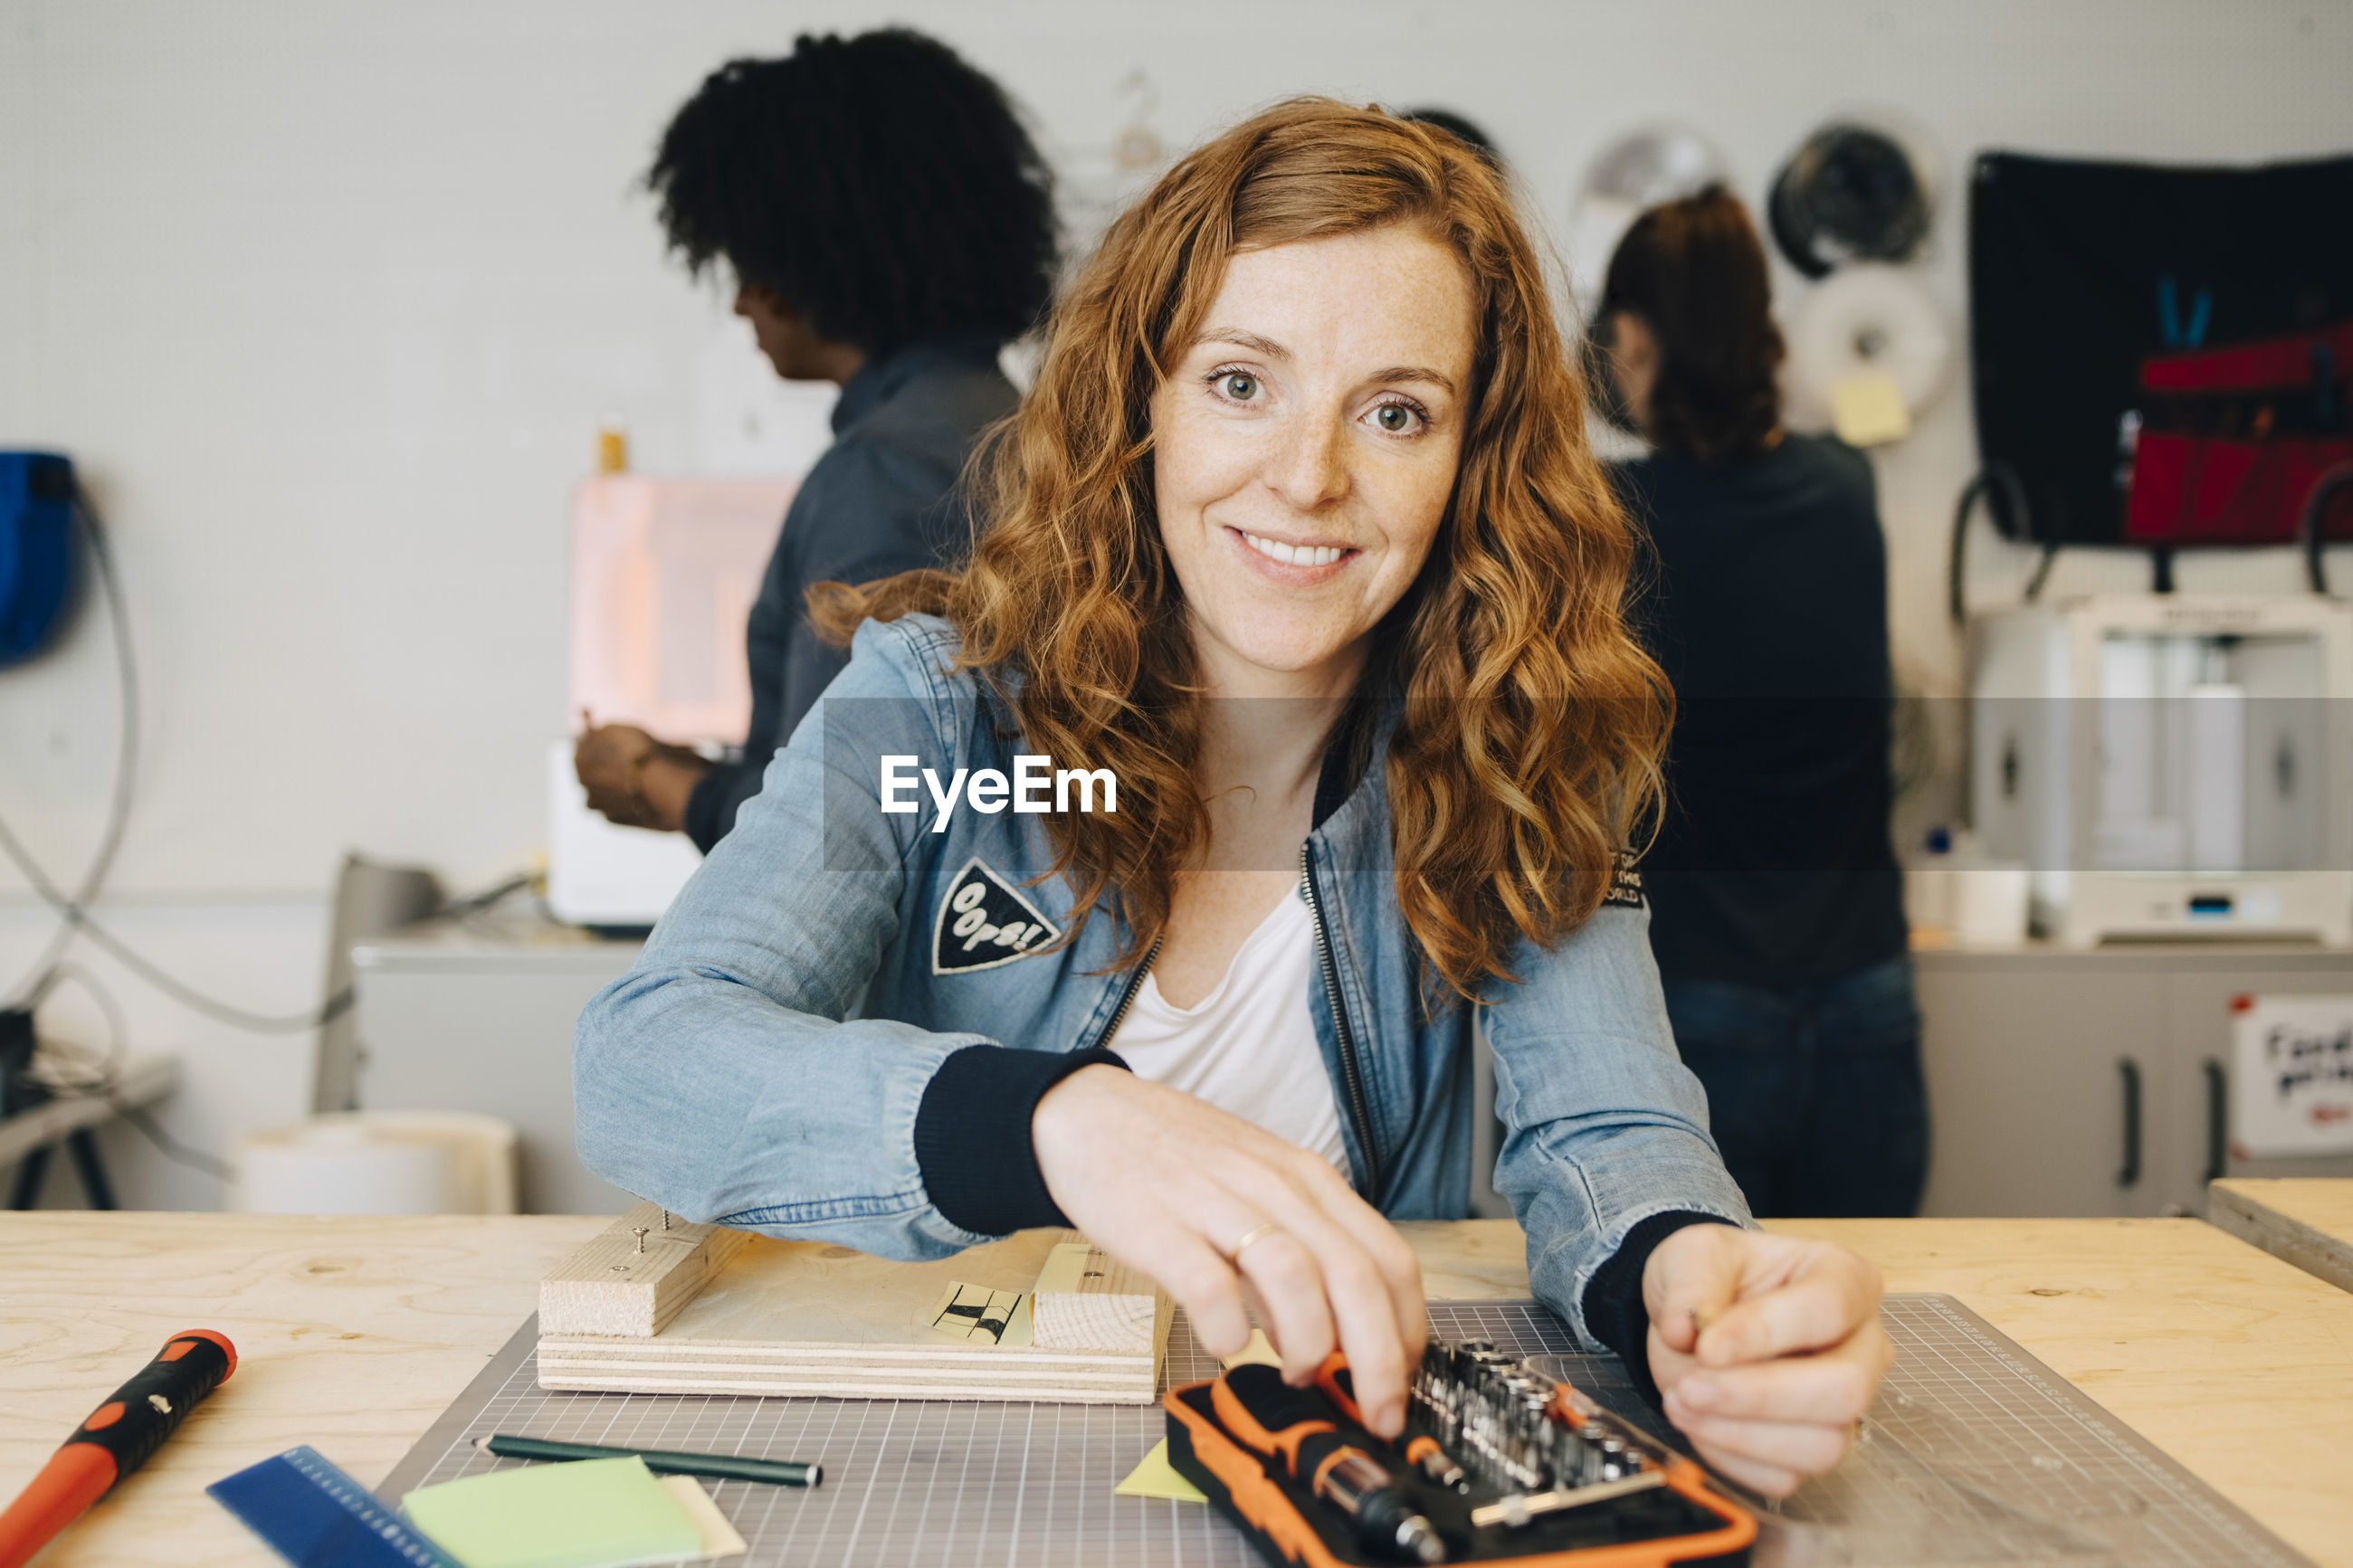 PORTRAIT OF A SMILING WOMAN WORKING